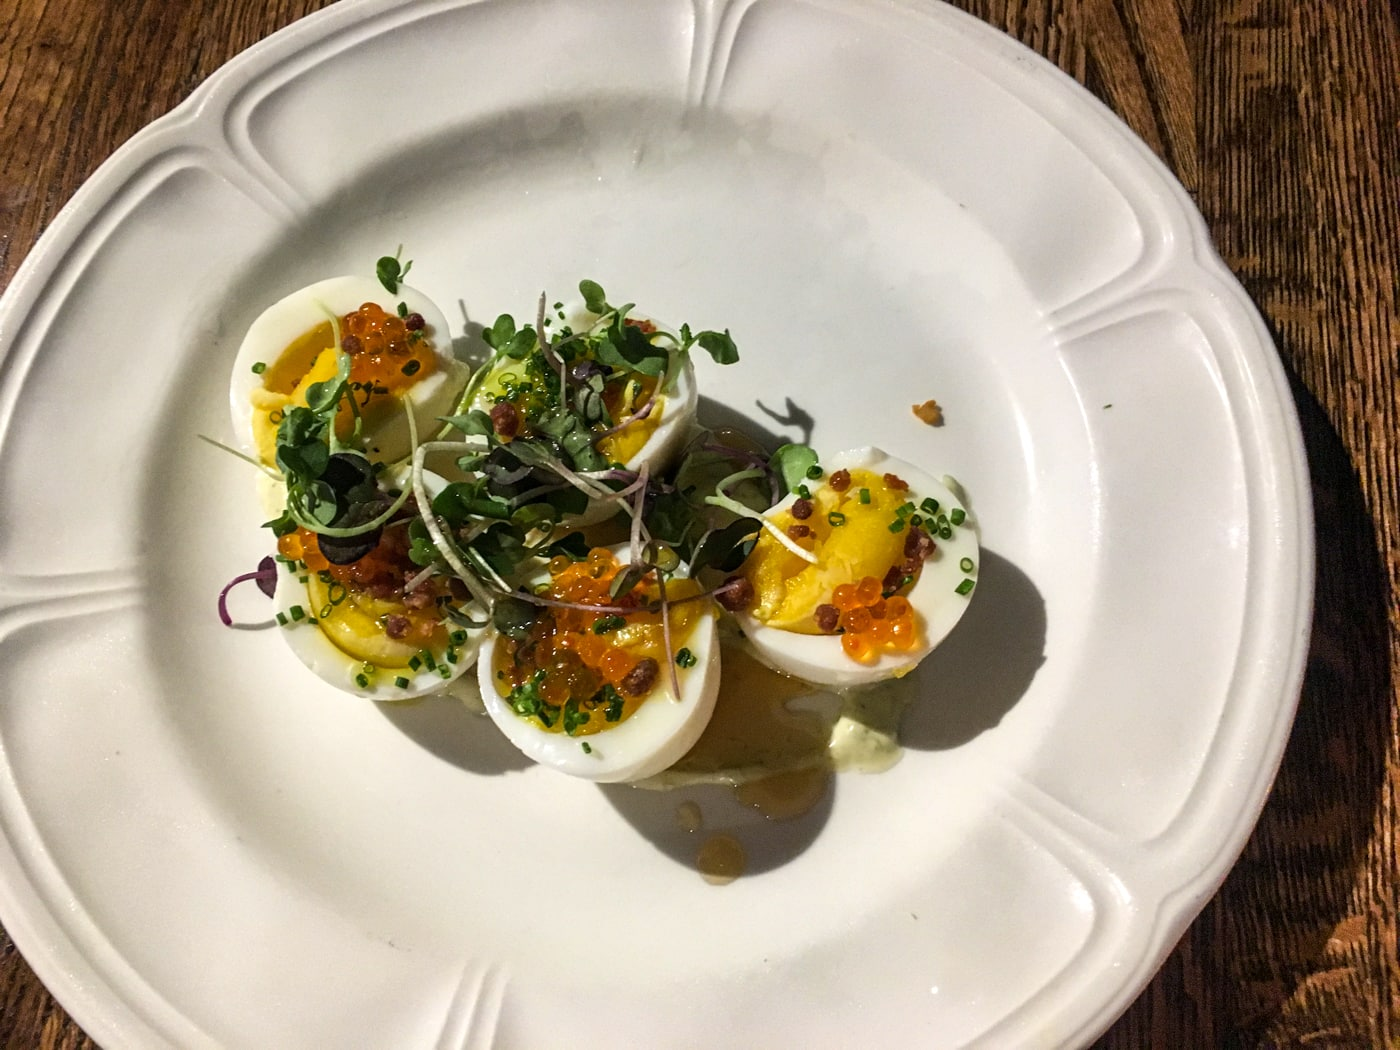 deviled farm eggs with ramp aioli, country ham, citrus infused maple, and smoked trout roe at Stirnella Bar & Kitchen in Omaha, Nebraska